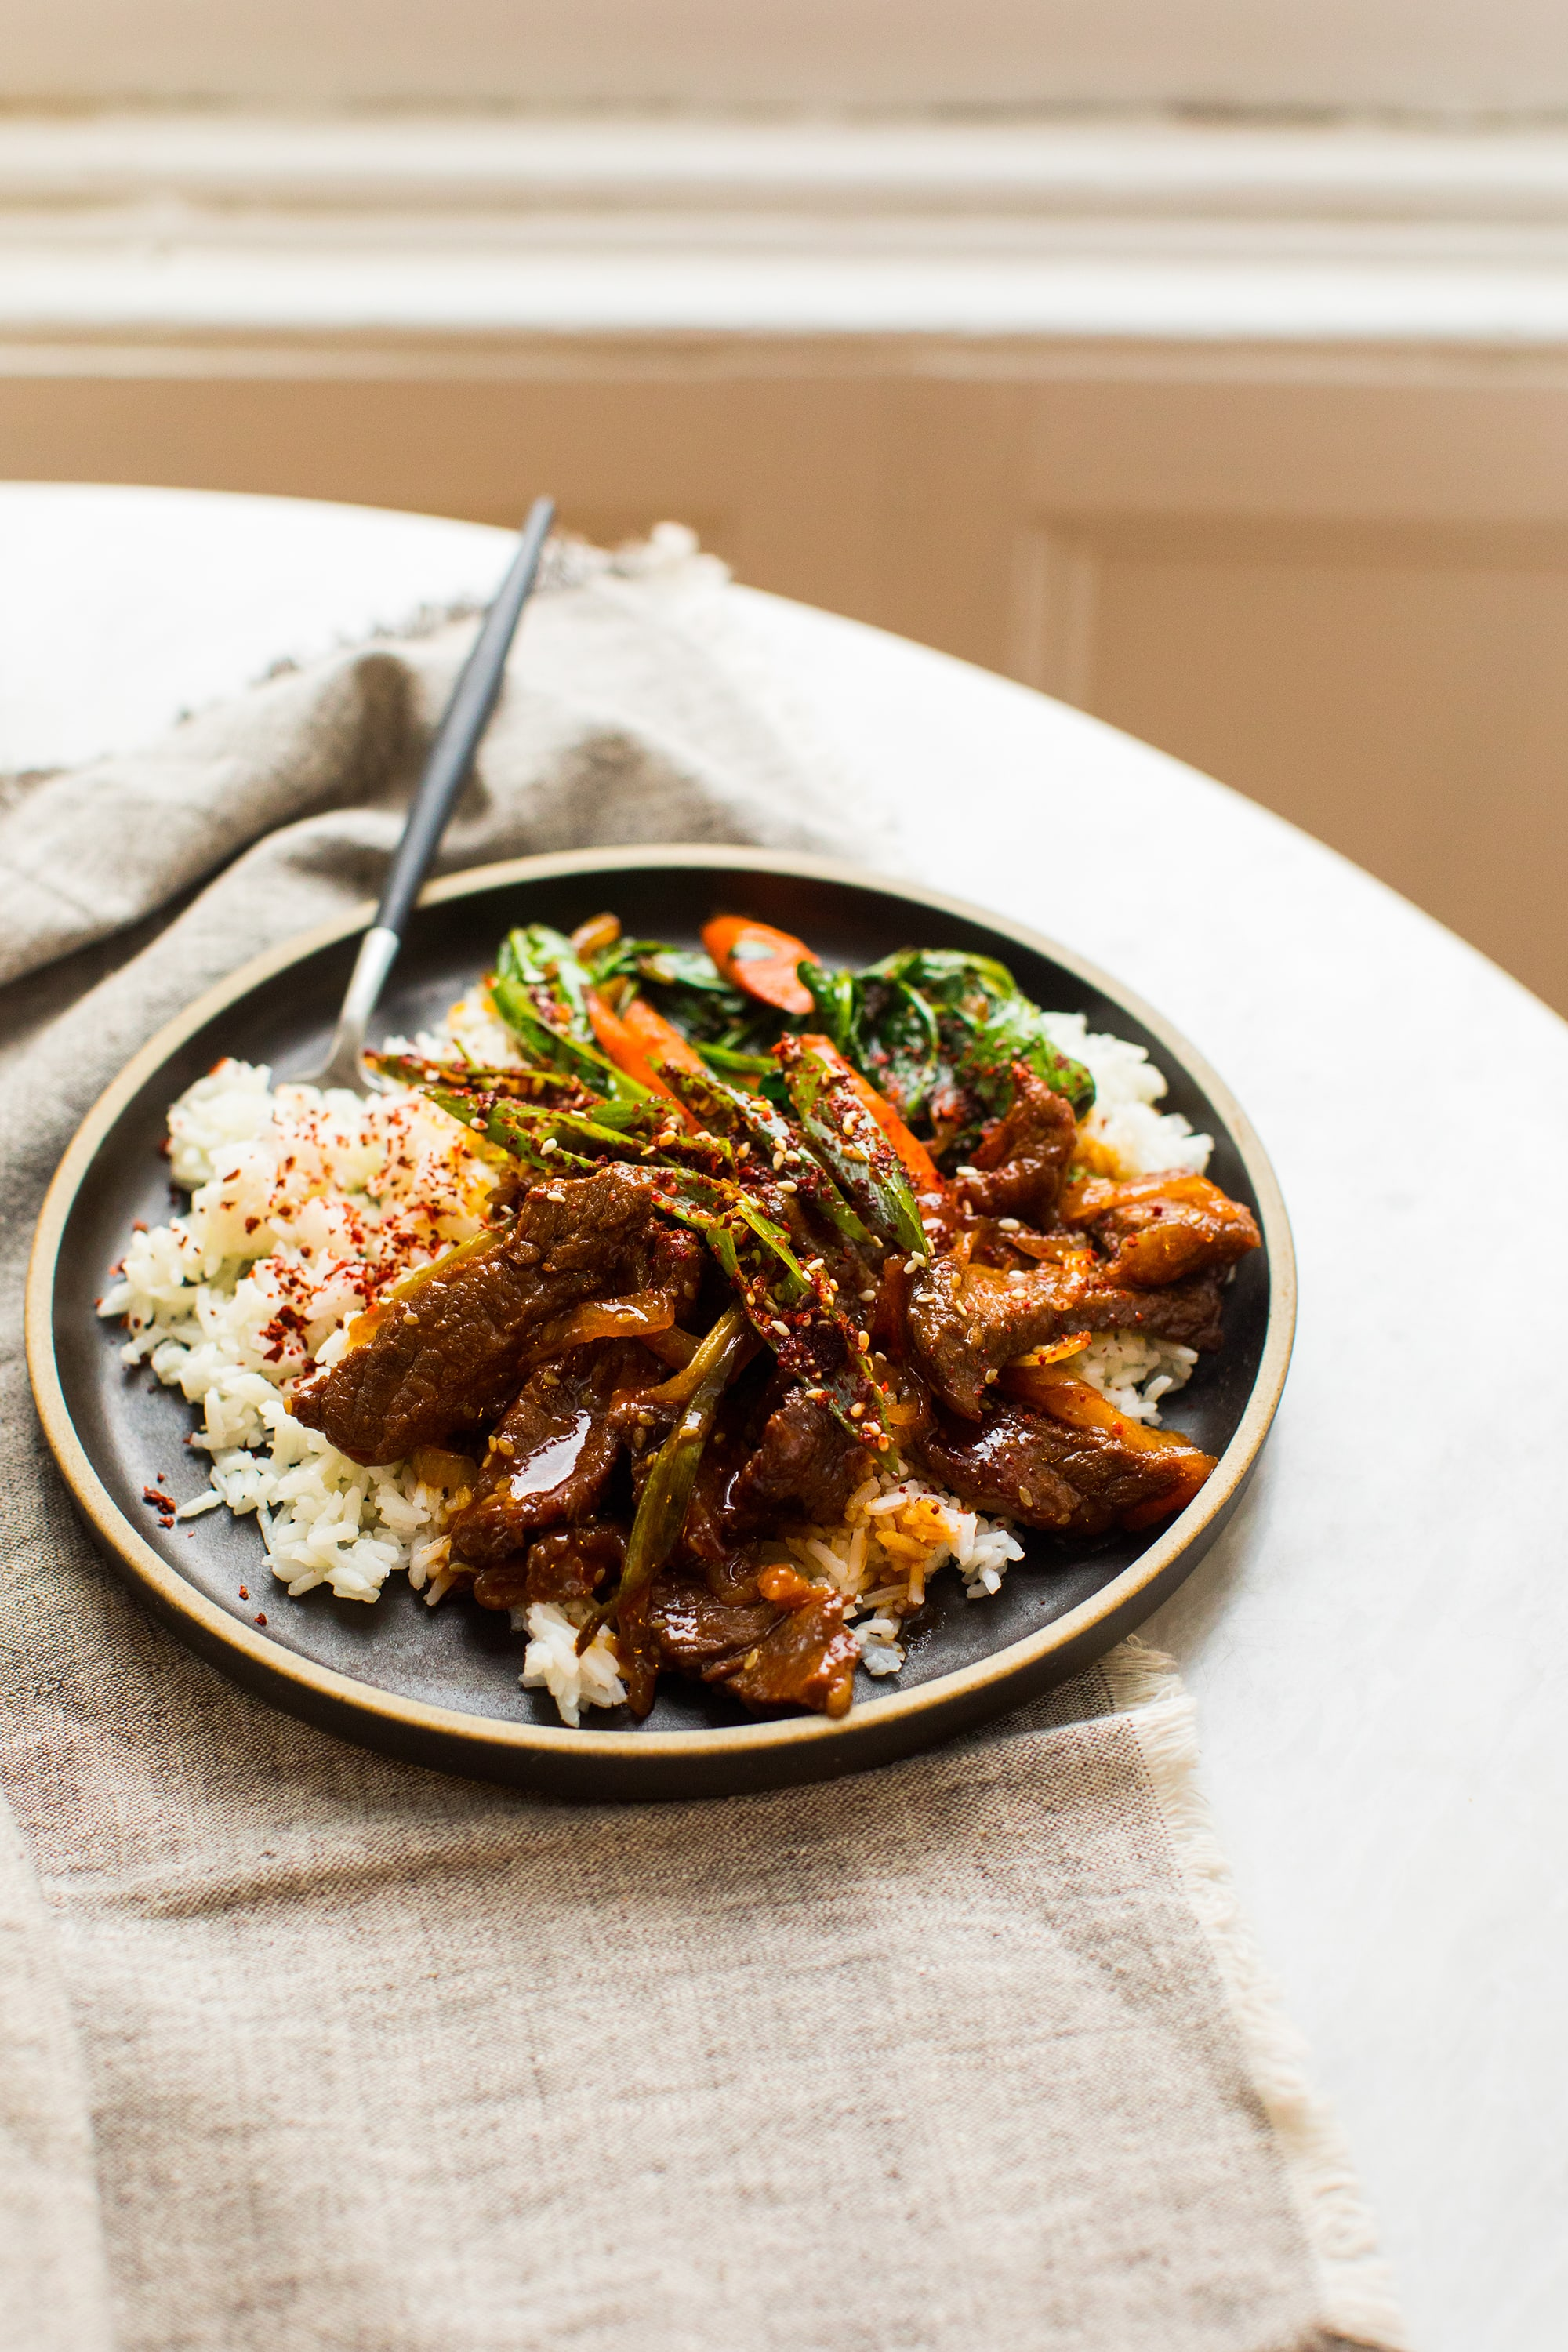 Spicy Gochujang Beef and Rice with Sautéed Vegetables